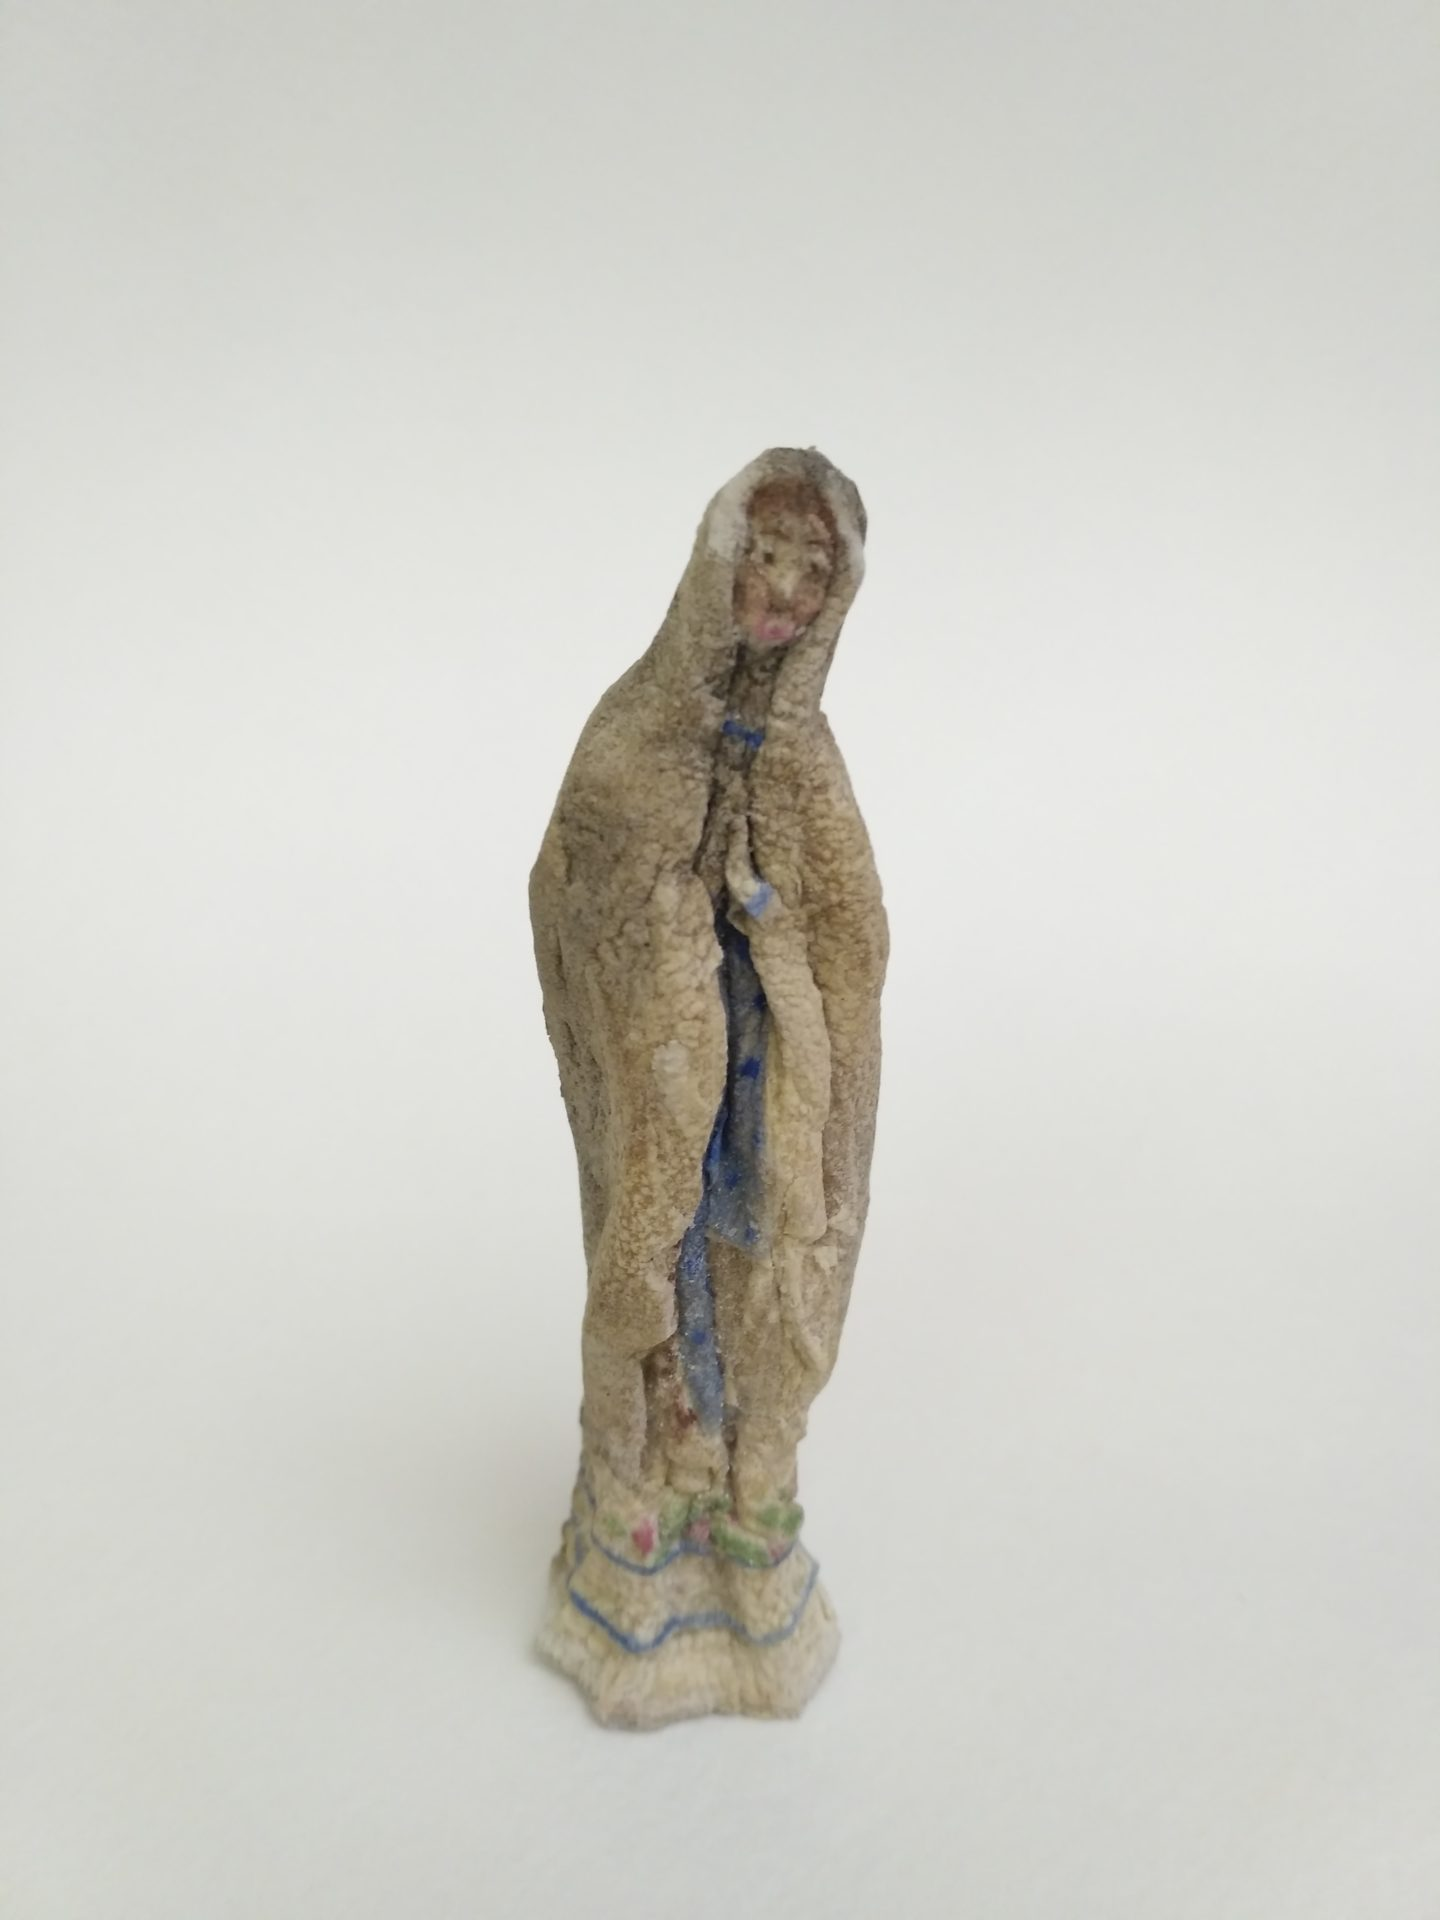 potato scupltures - Virgin Mary (6)